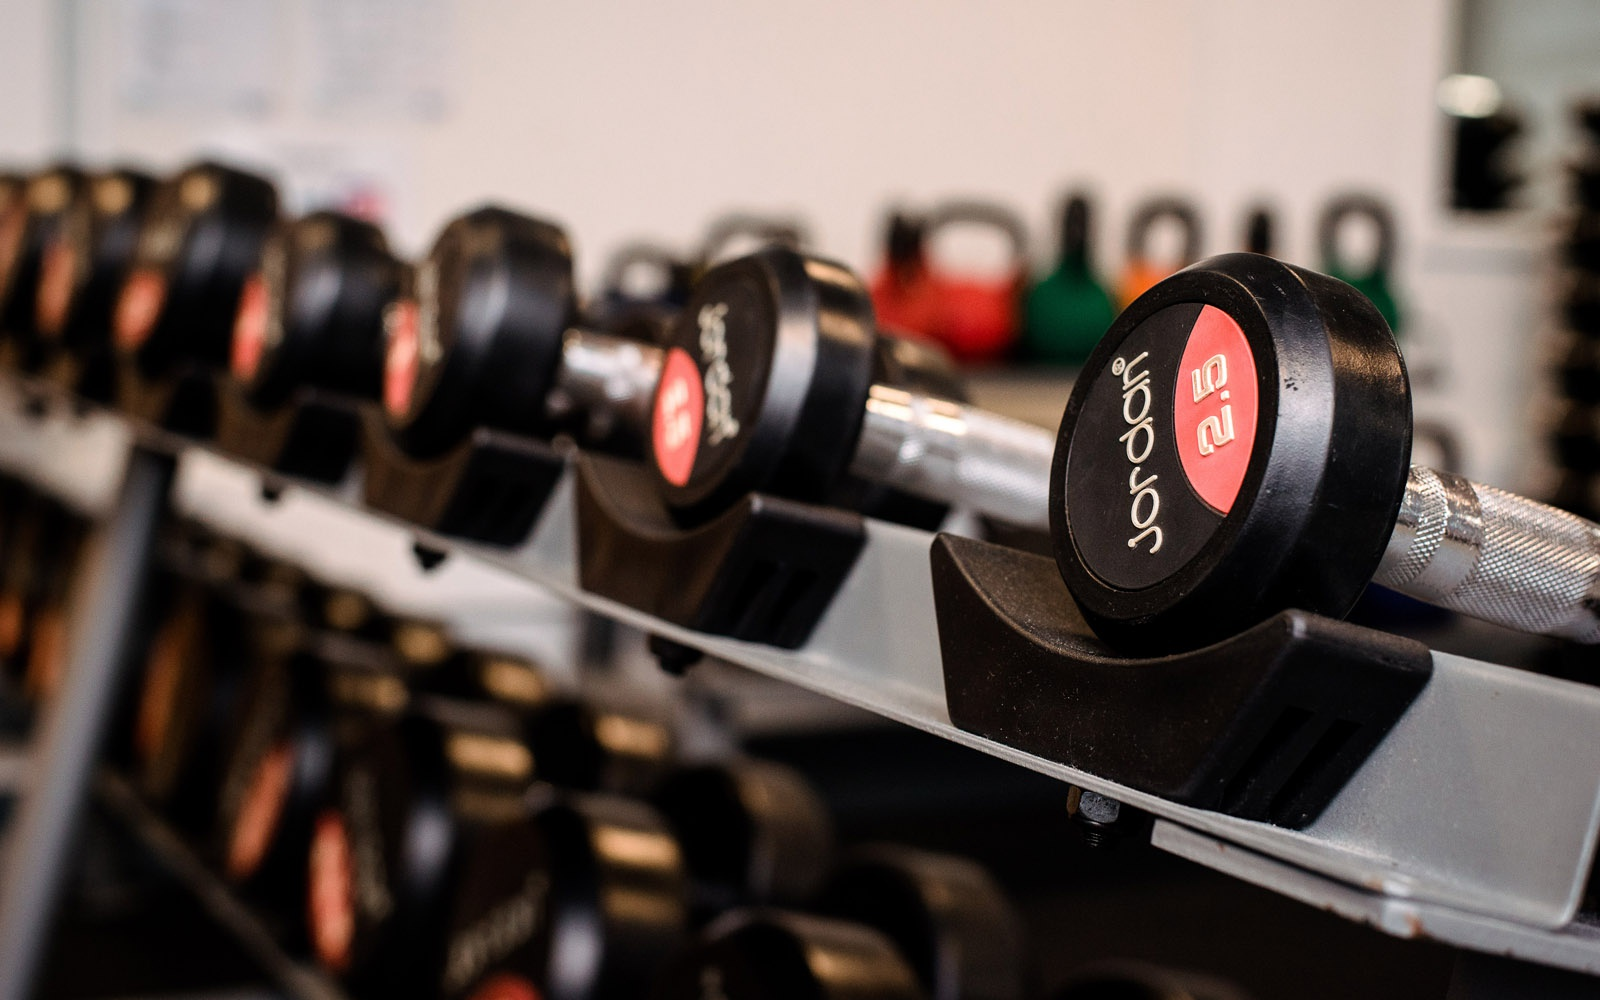 Weights on rack in fitness suite